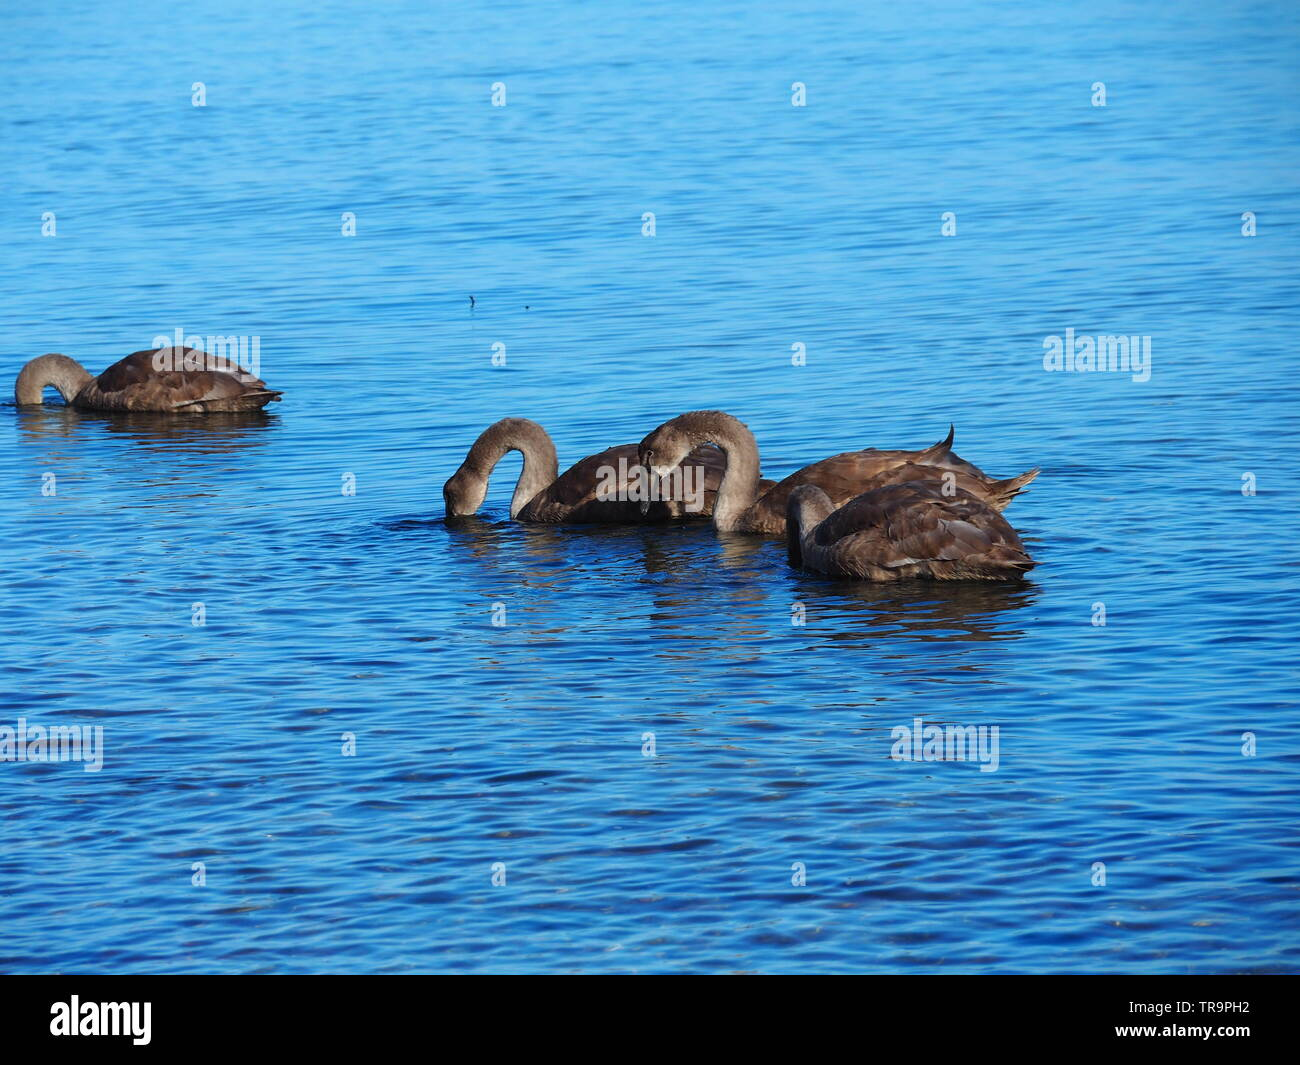 brown geese are swimming in the baltic sea - Stock Image